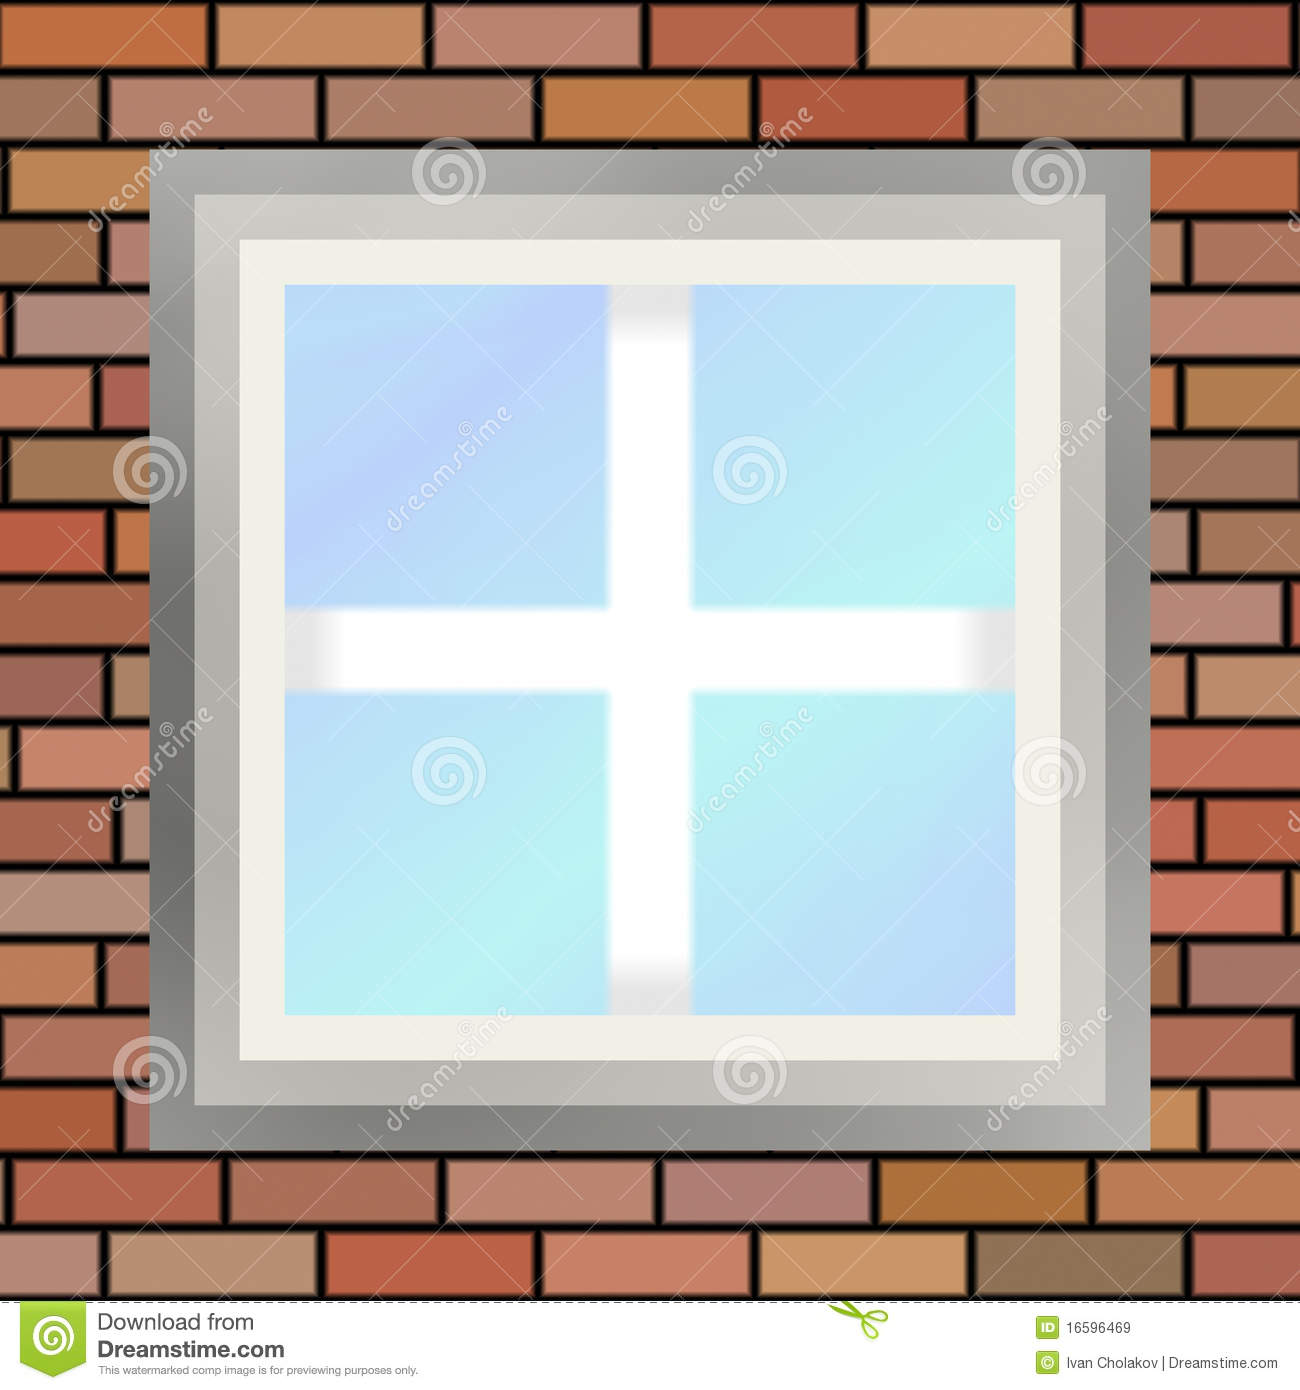 Square Window Royalty Free Stock Images - Image: 16596469